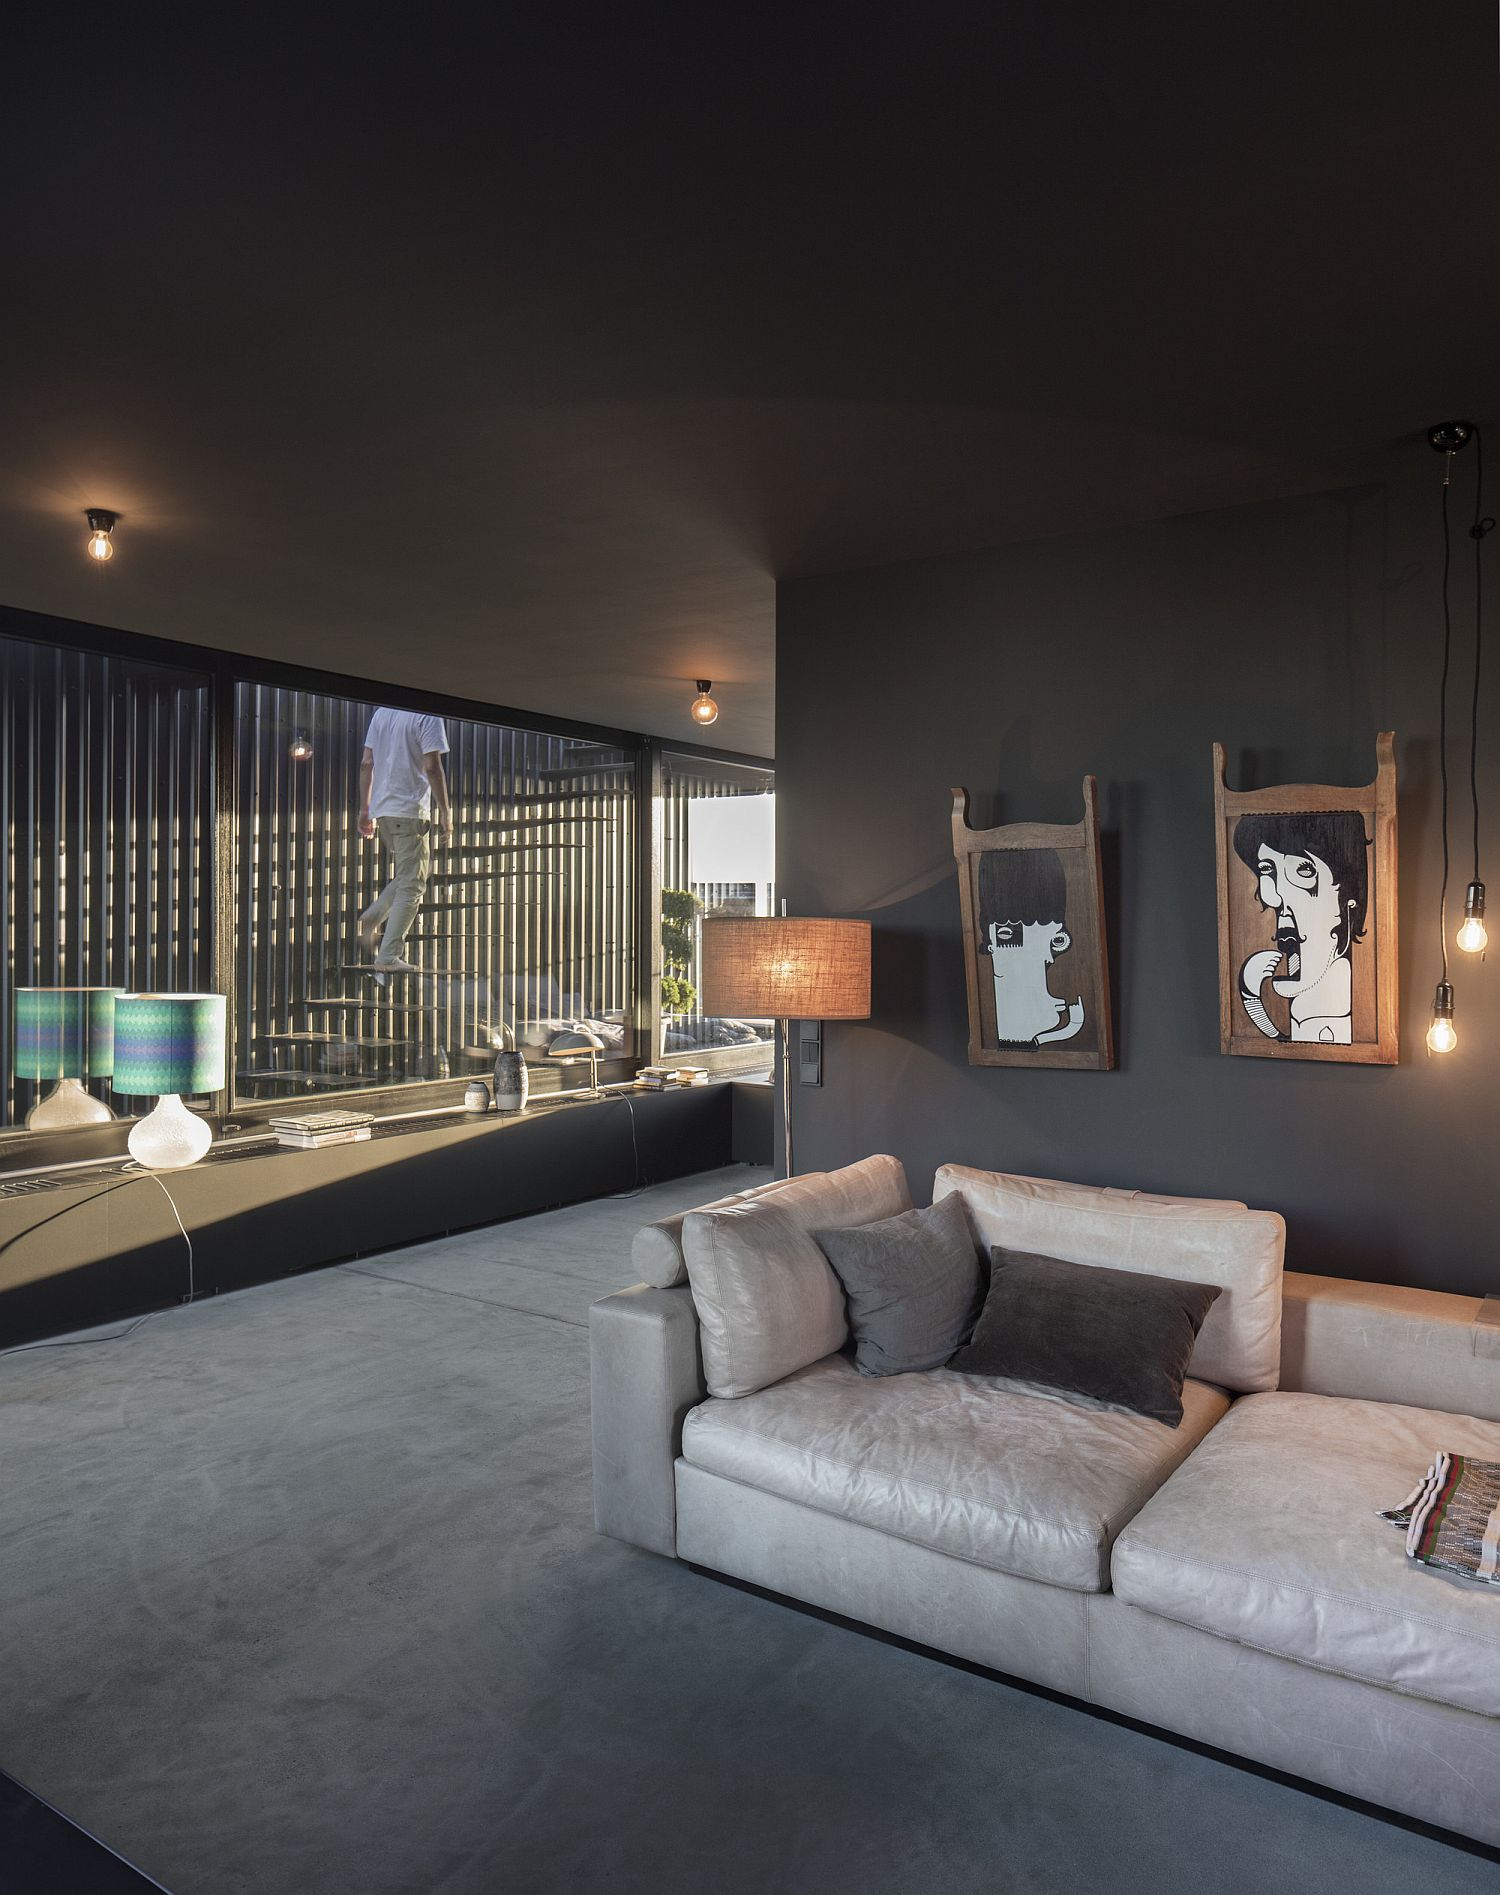 Dark gray and black give the penthouse interior a unique, sophisticated vibe